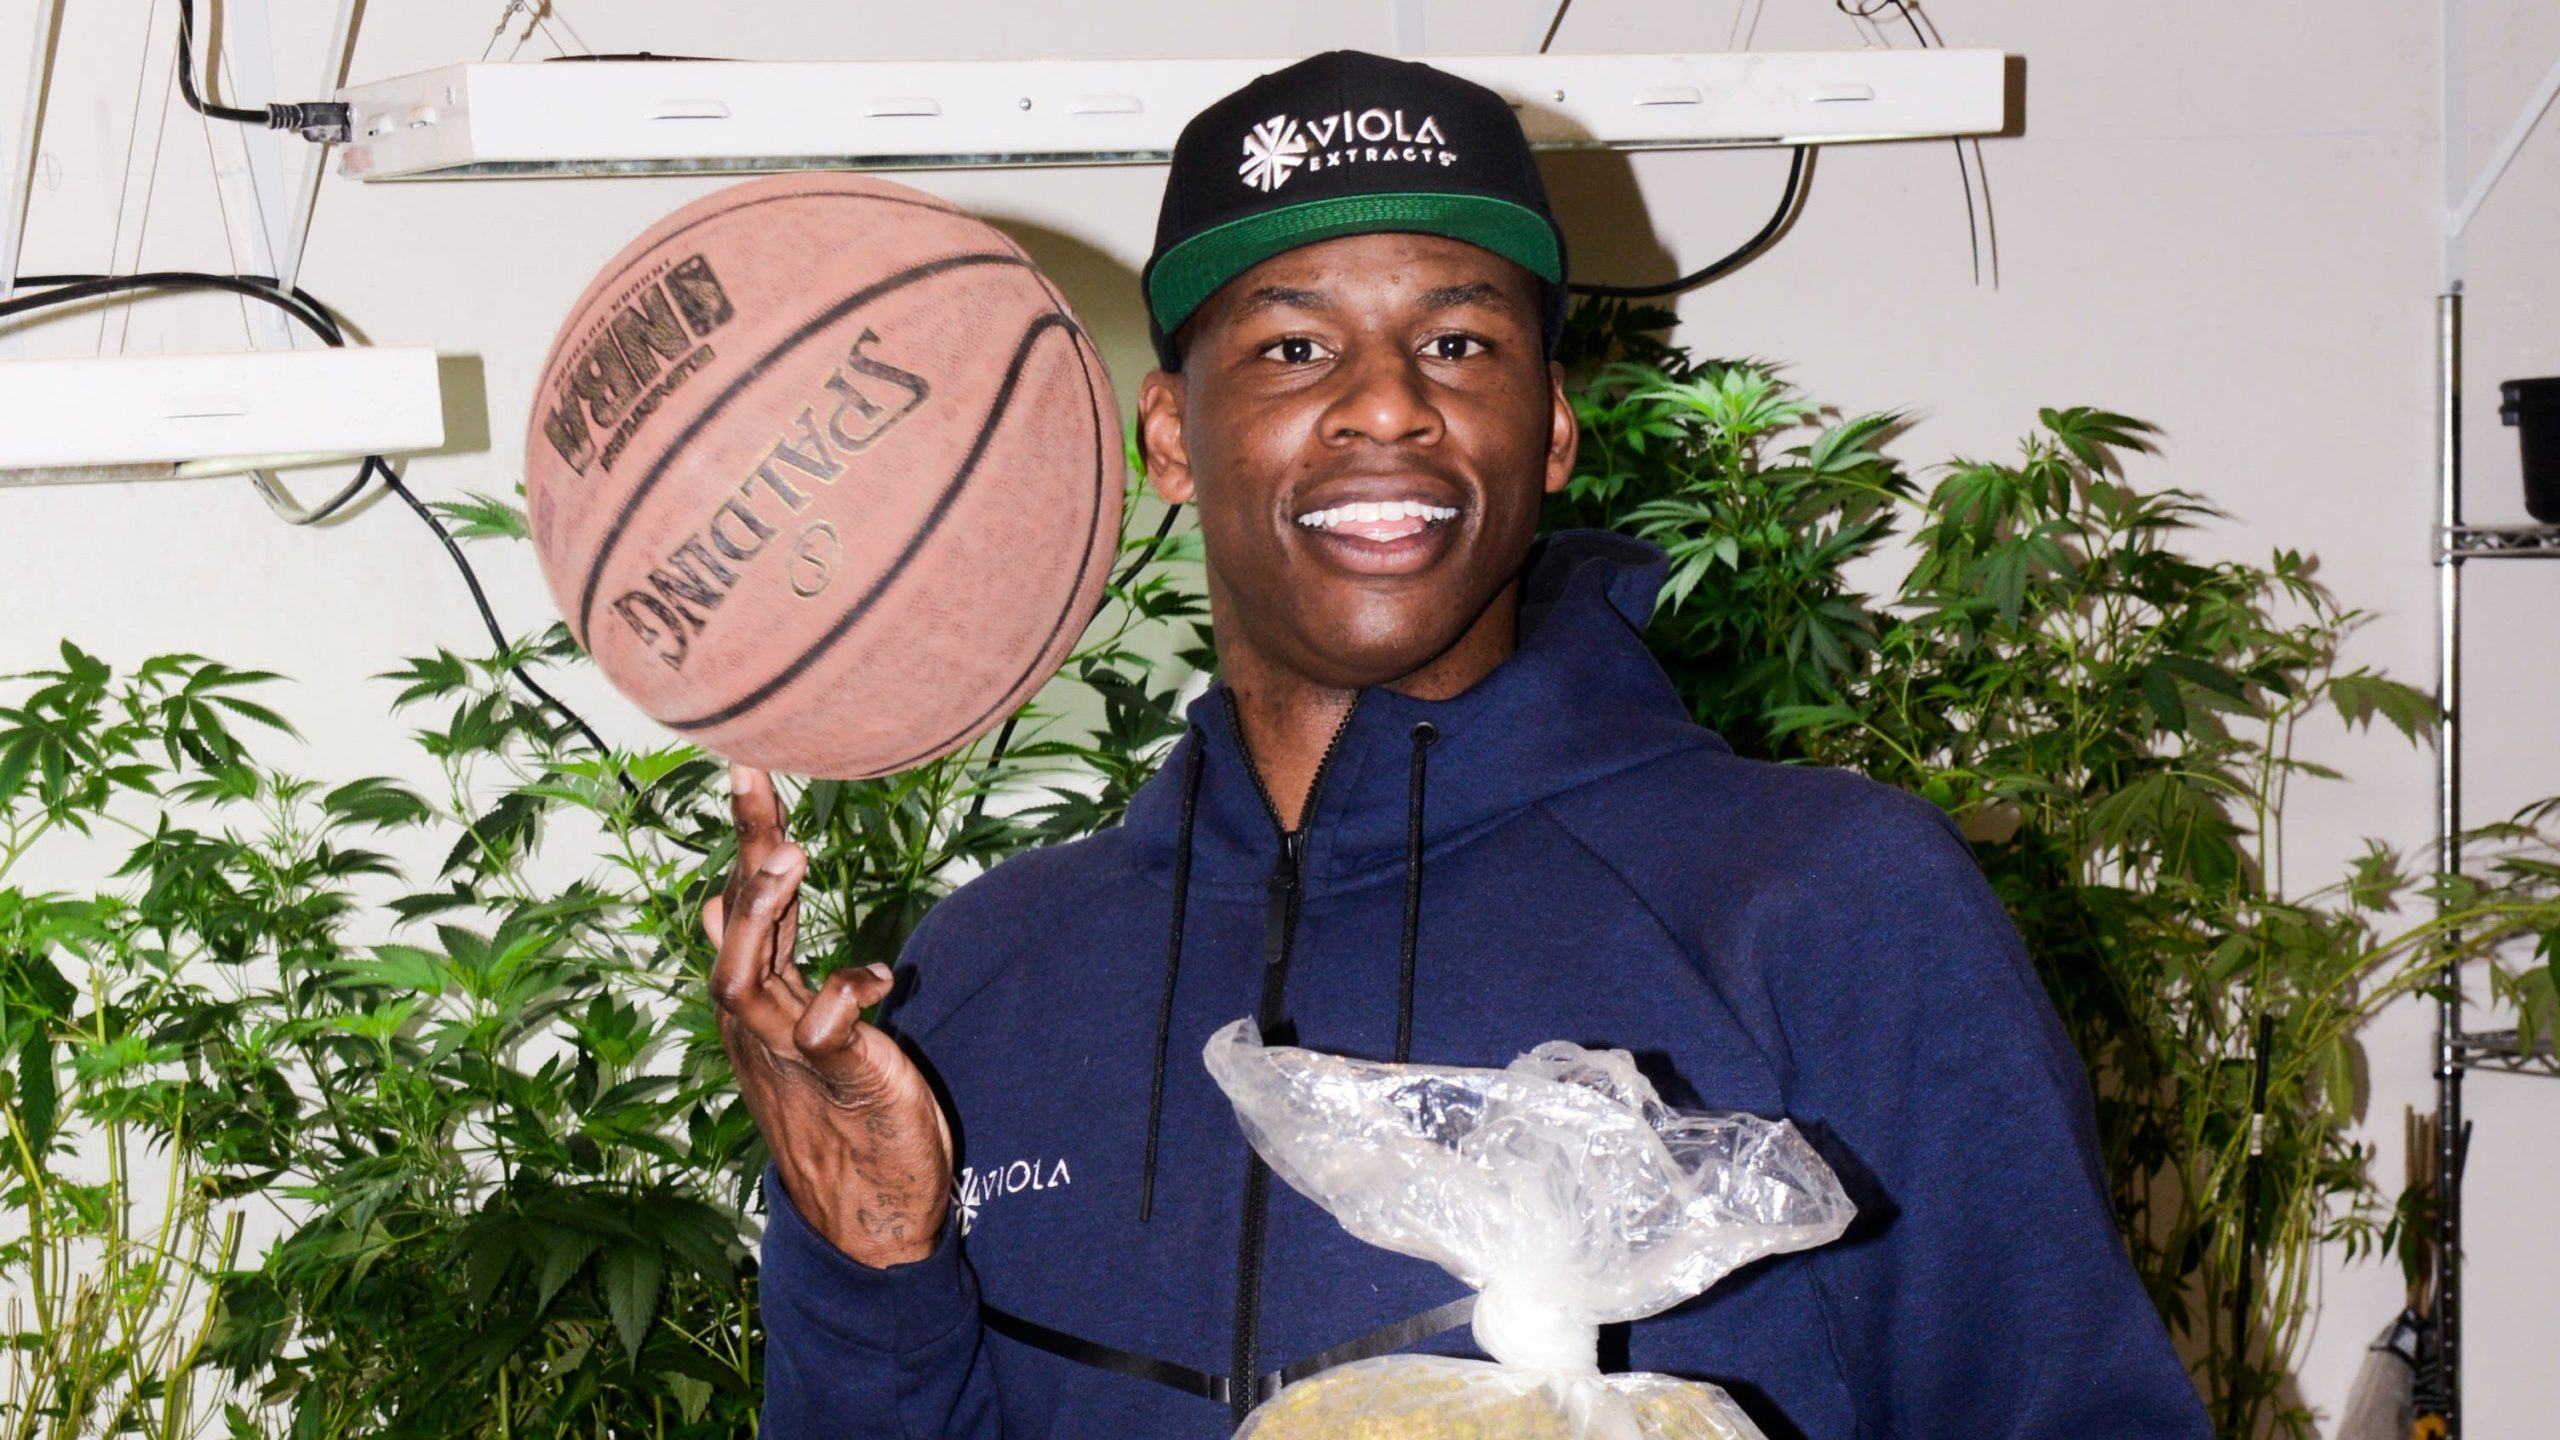 Really neat article about former professional athlete starting his own Marijuana company.